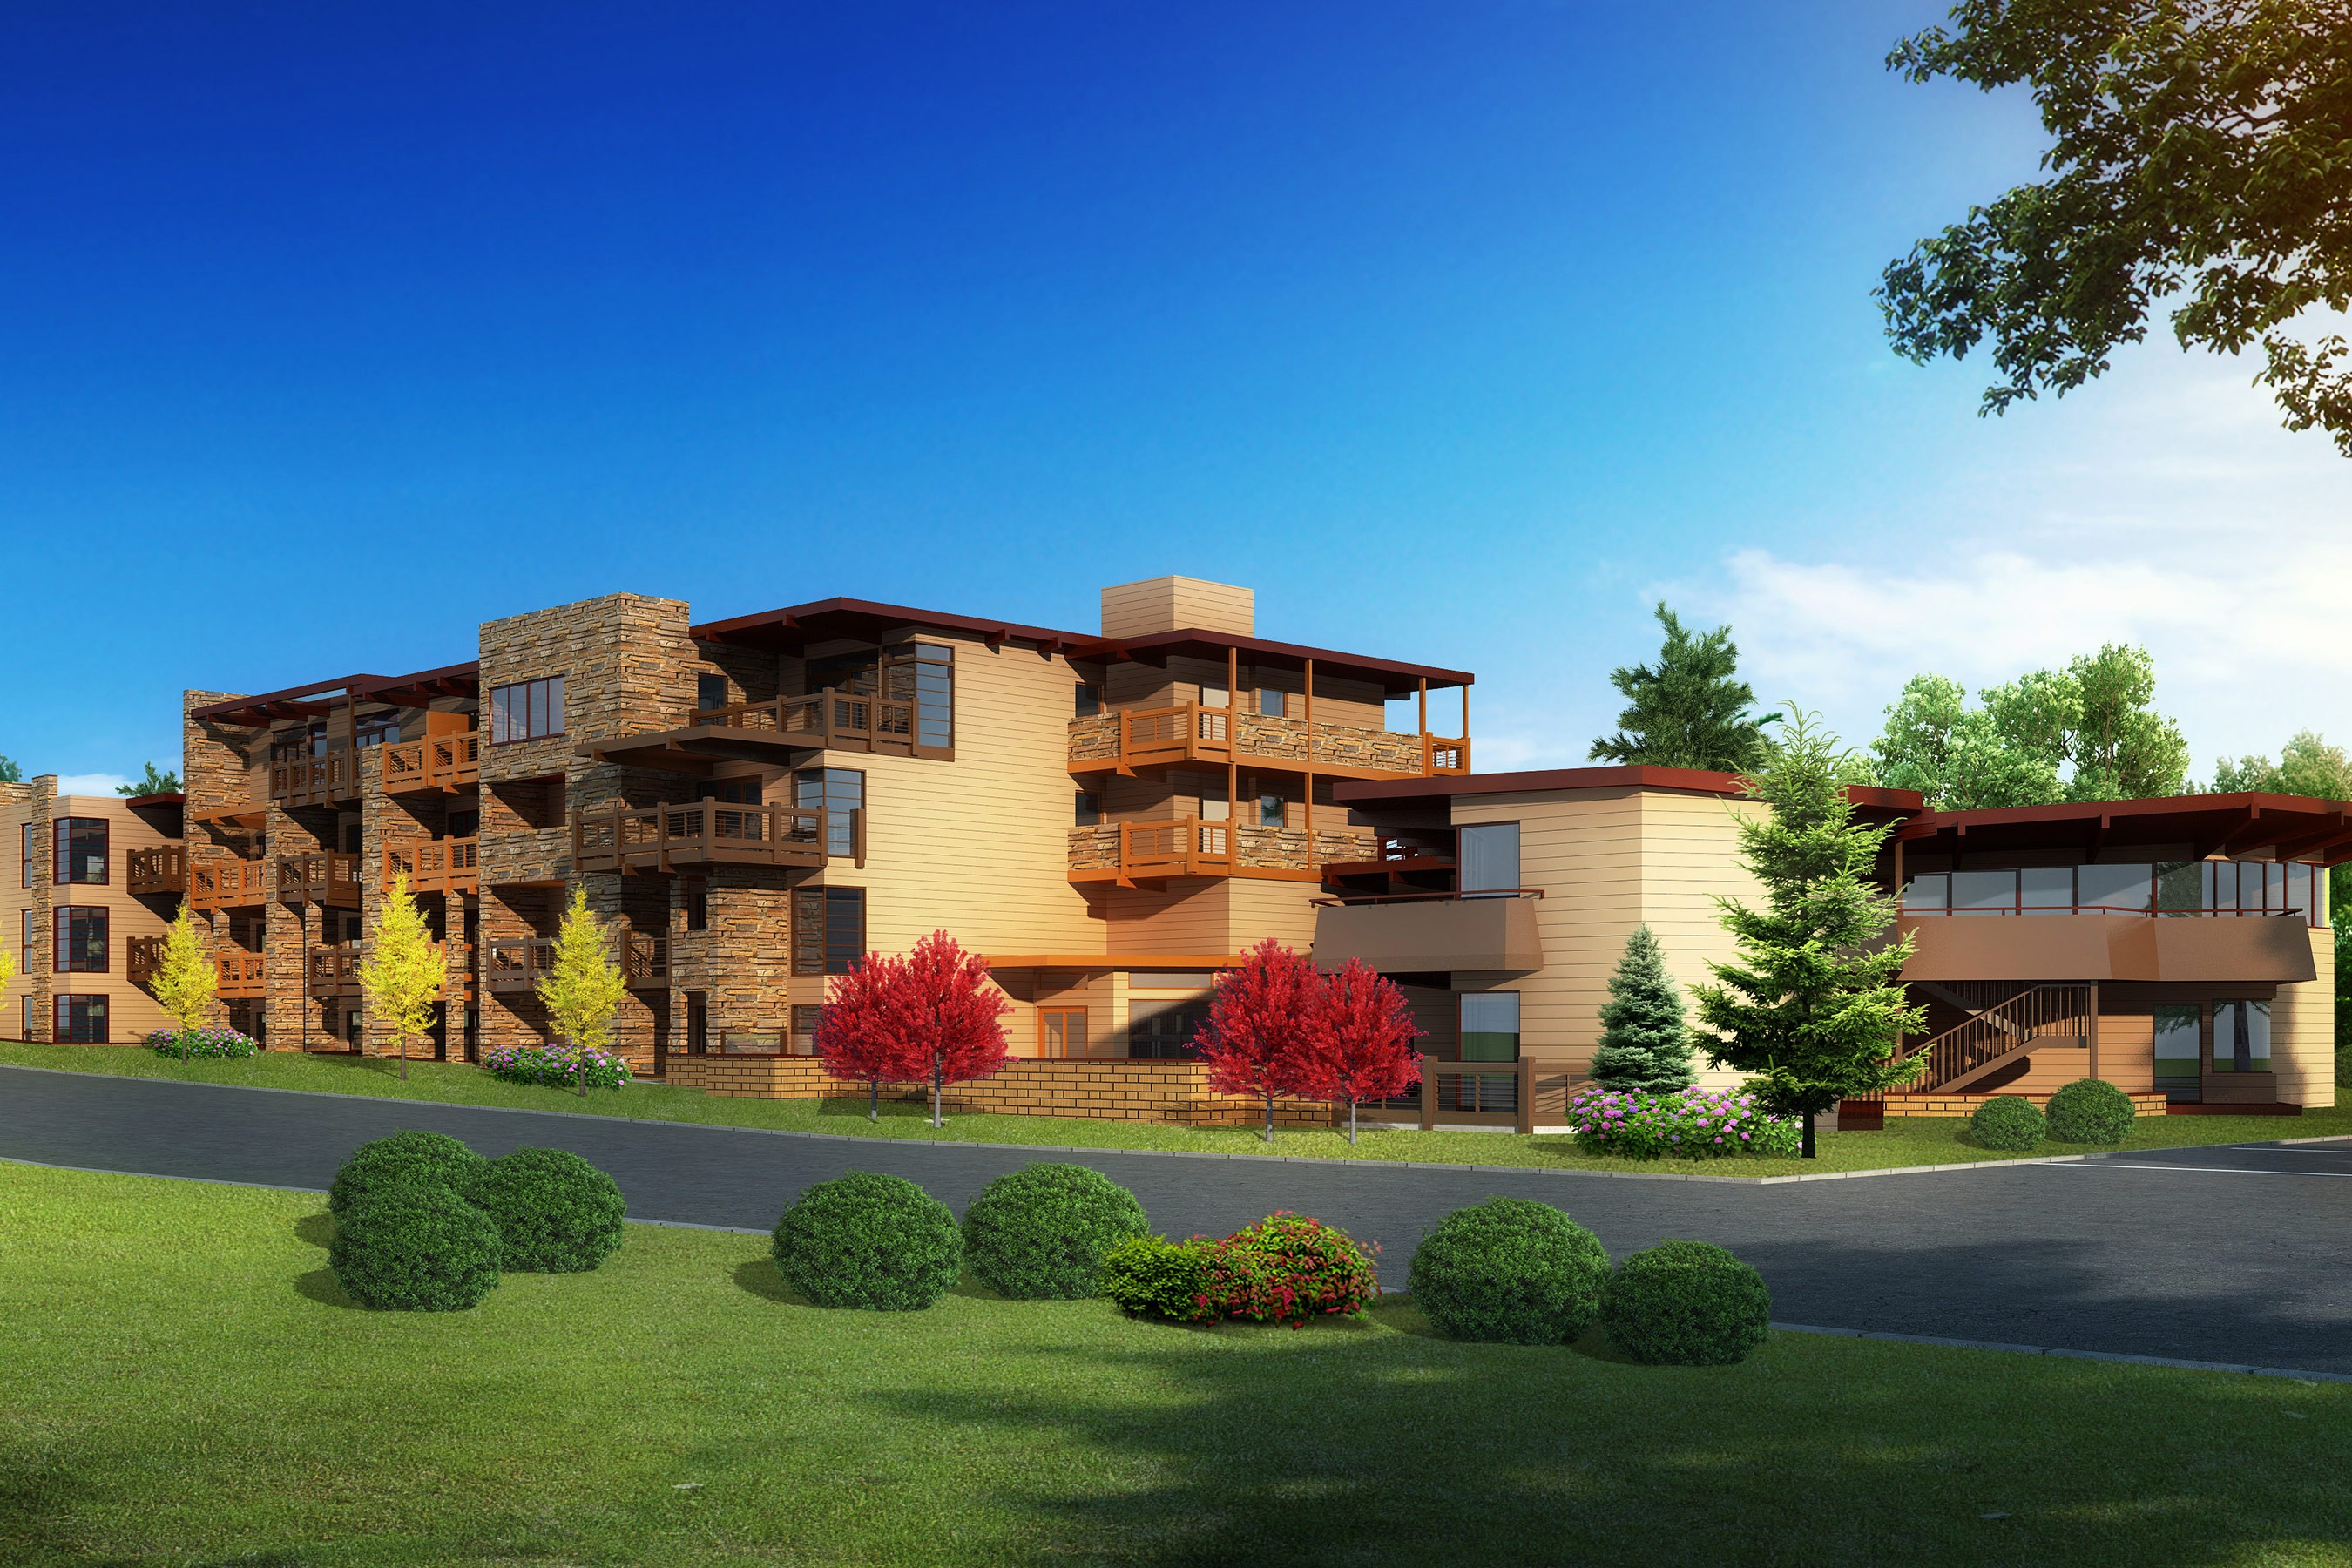 Condominium for Sale at Boomerang Lodge 500 W. Hopkins Avenue Unit 203 Aspen, Colorado, 81611 United States